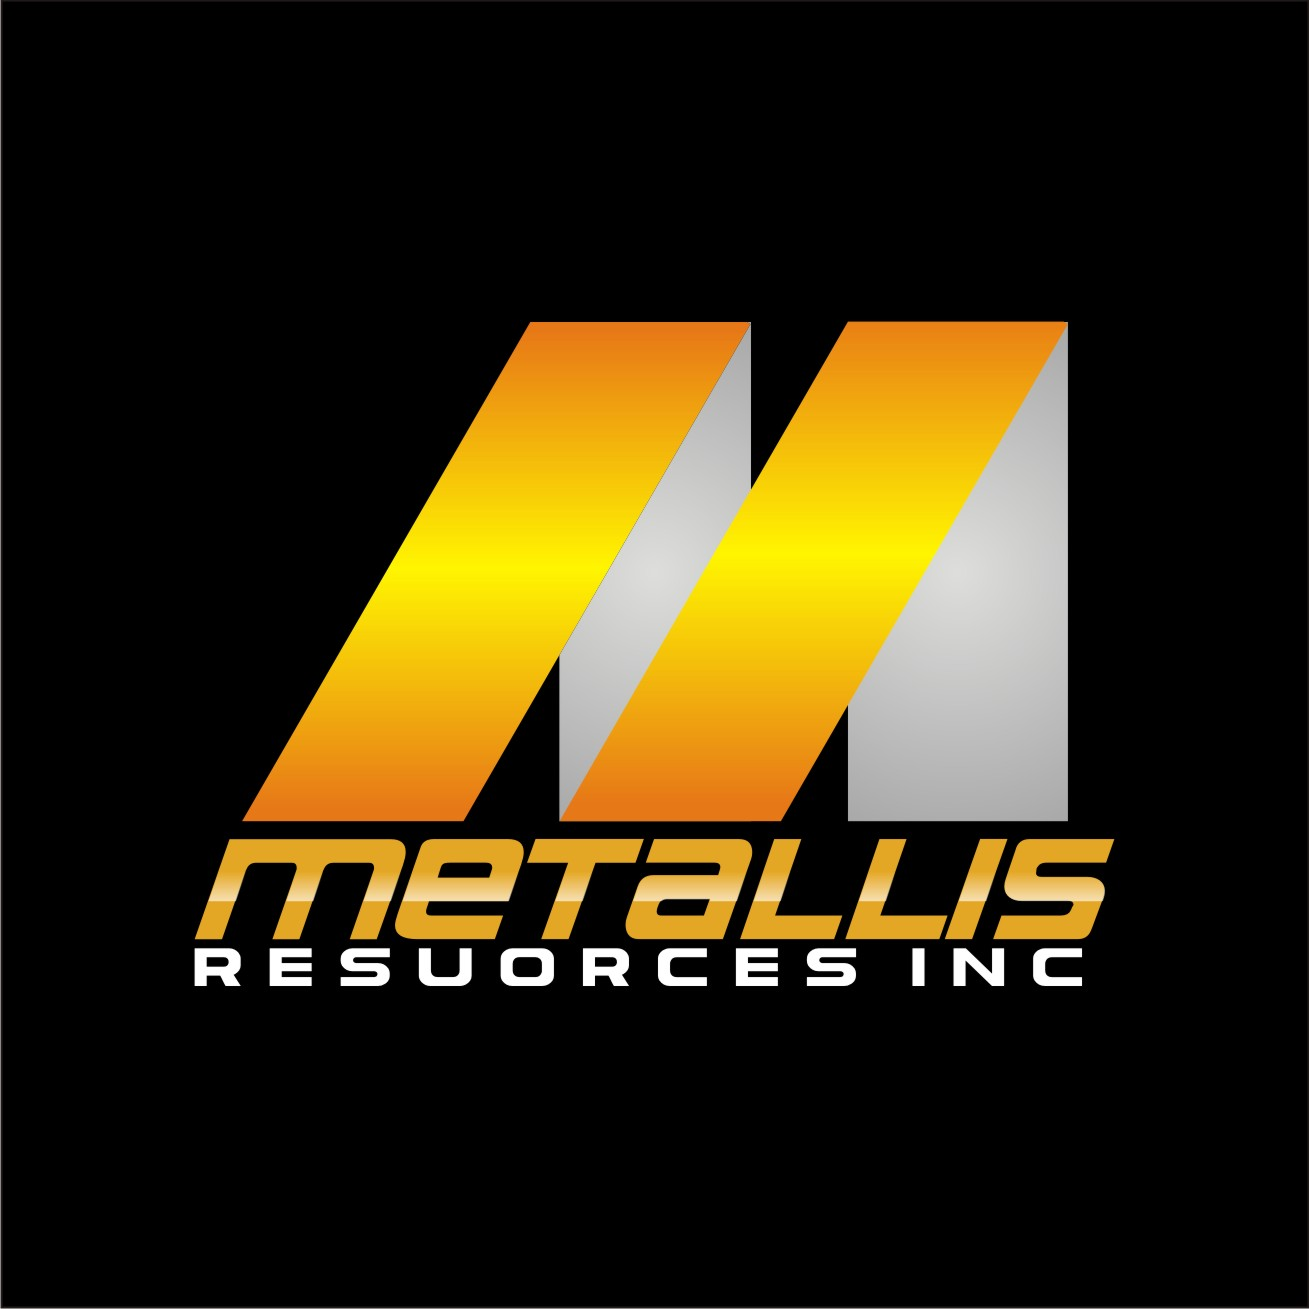 Logo Design by Rock n Rool - Entry No. 81 in the Logo Design Contest Metallis Resources Inc Logo Design.